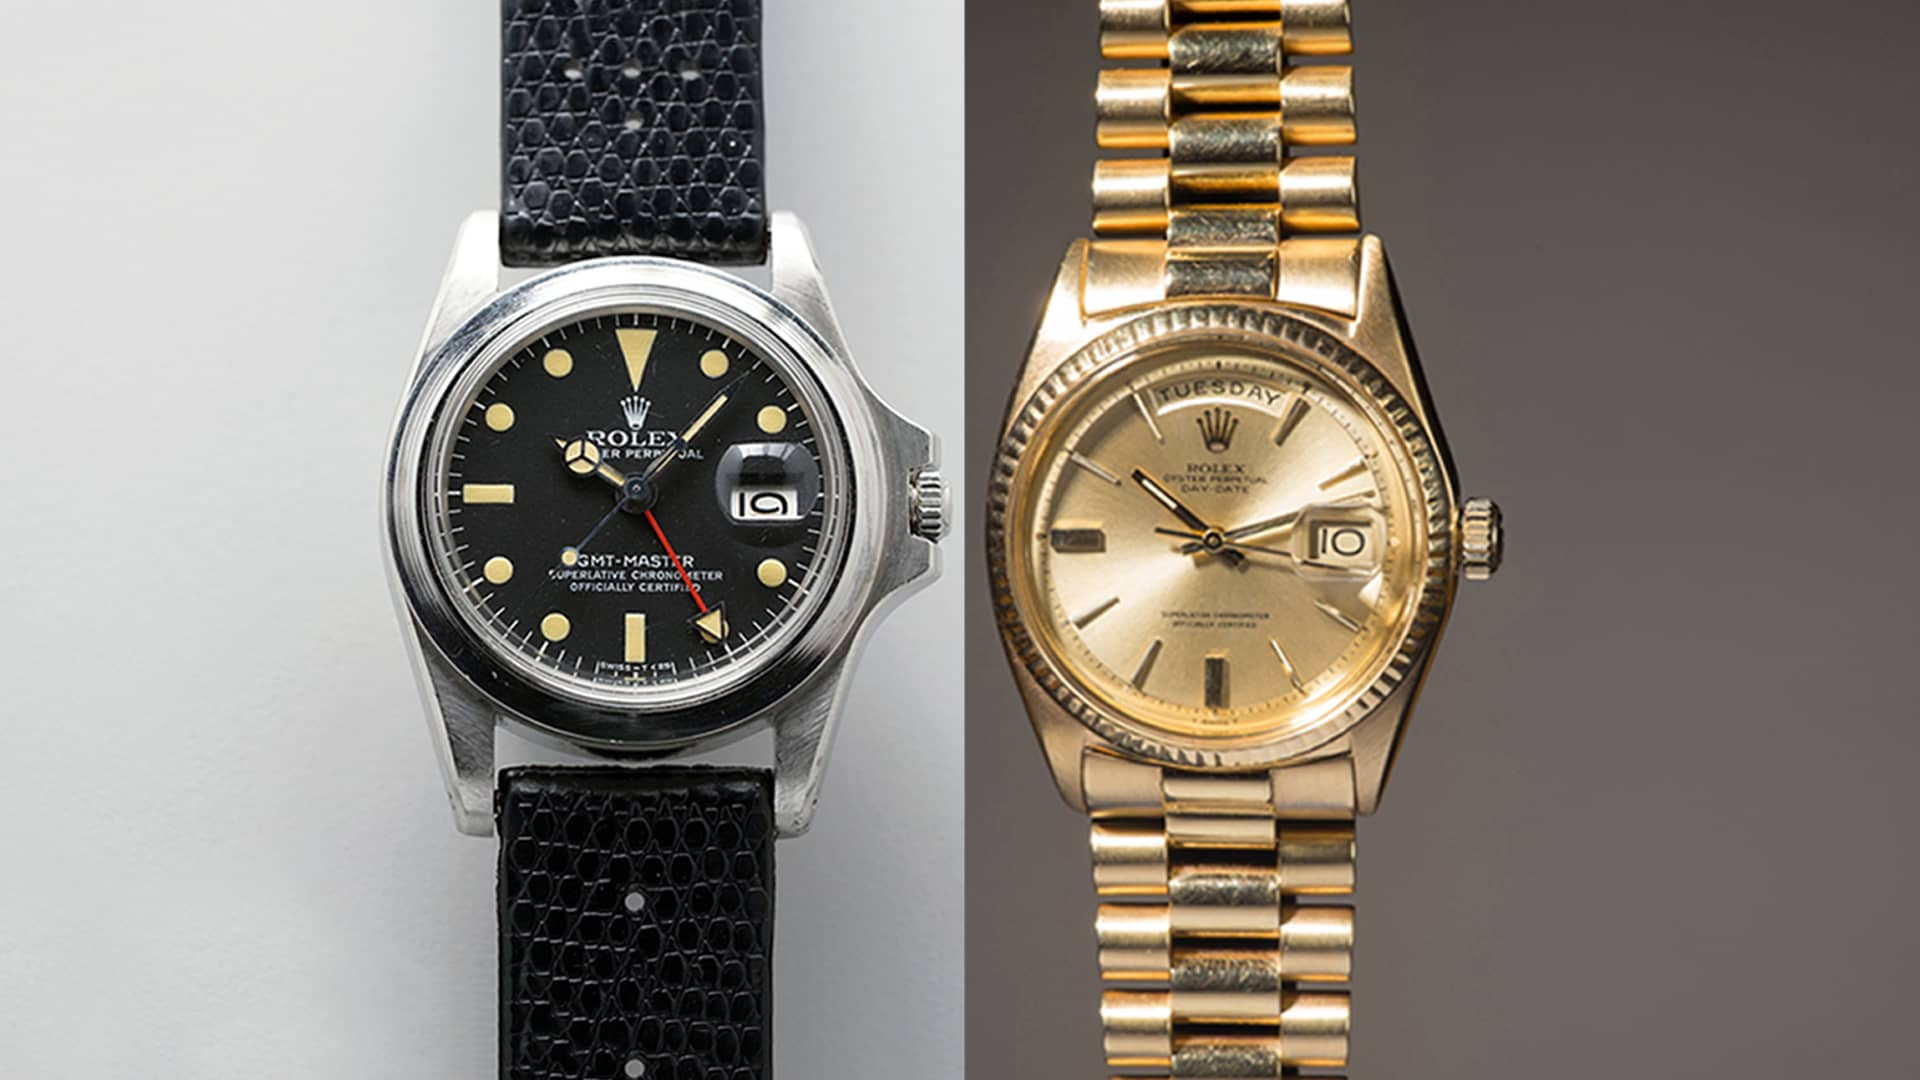 These famous Rolex watches could become 2 of the most expensive ever sold